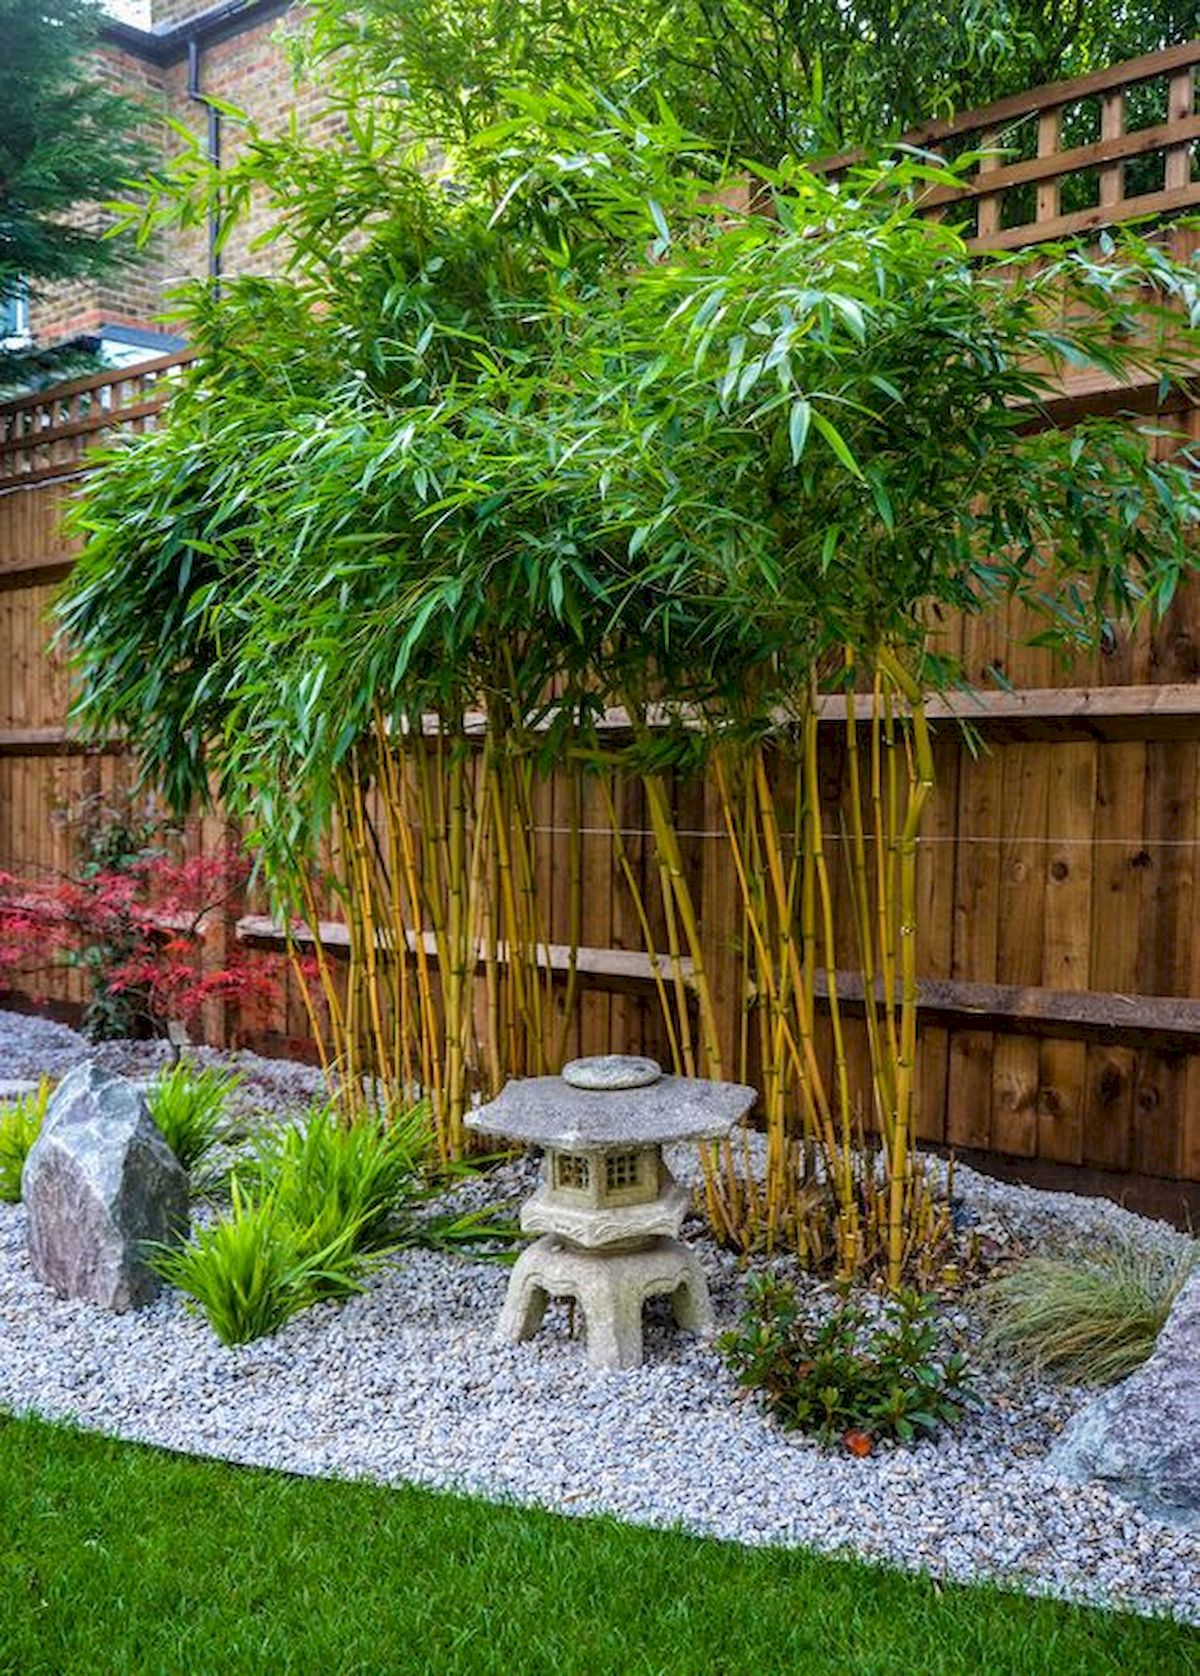 80 Wonderful Side Yard And Backyard Japanese Garden Design ... on Small Backyard Japanese Garden Ideas id=41335